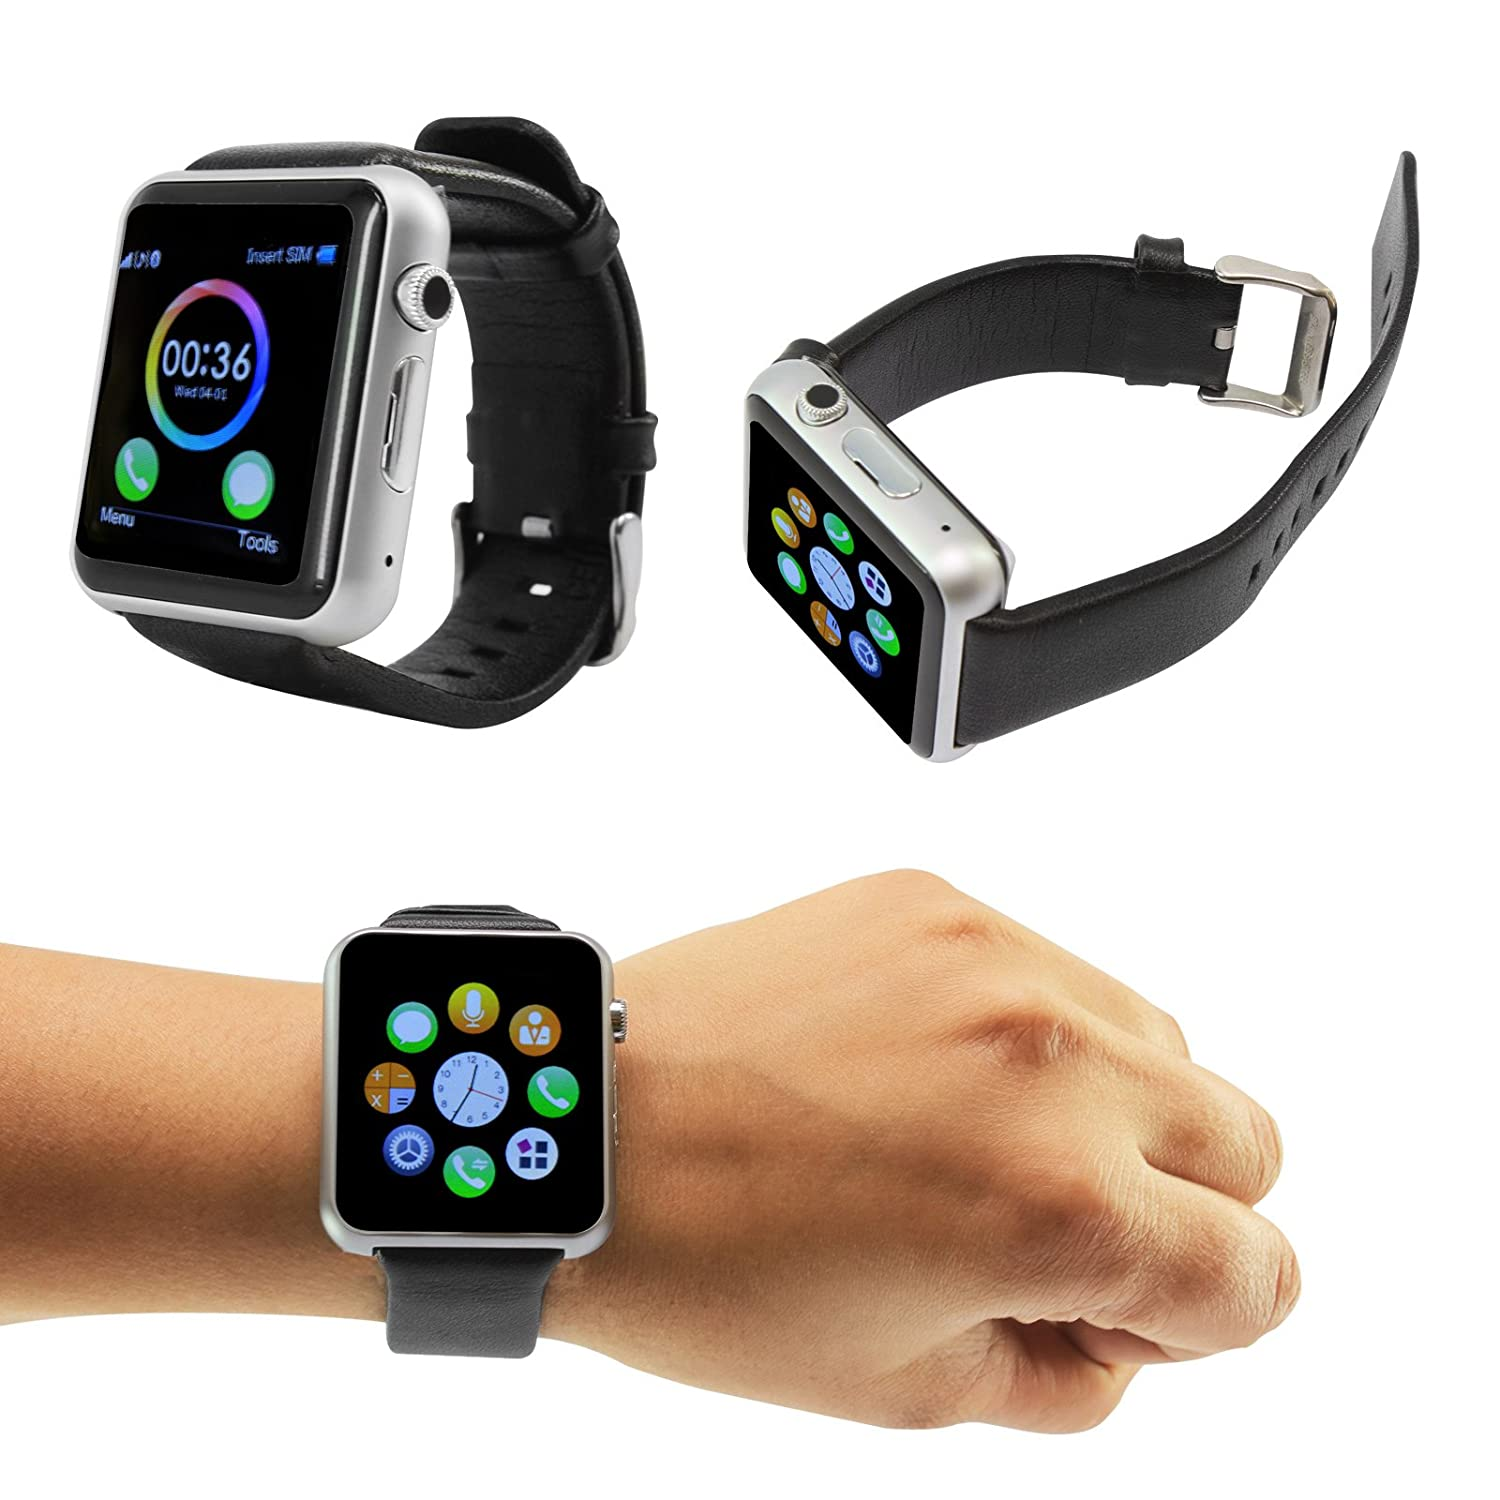 smart watch card for reviews phones watches phone sim ios mobile bluetooth product store android camera